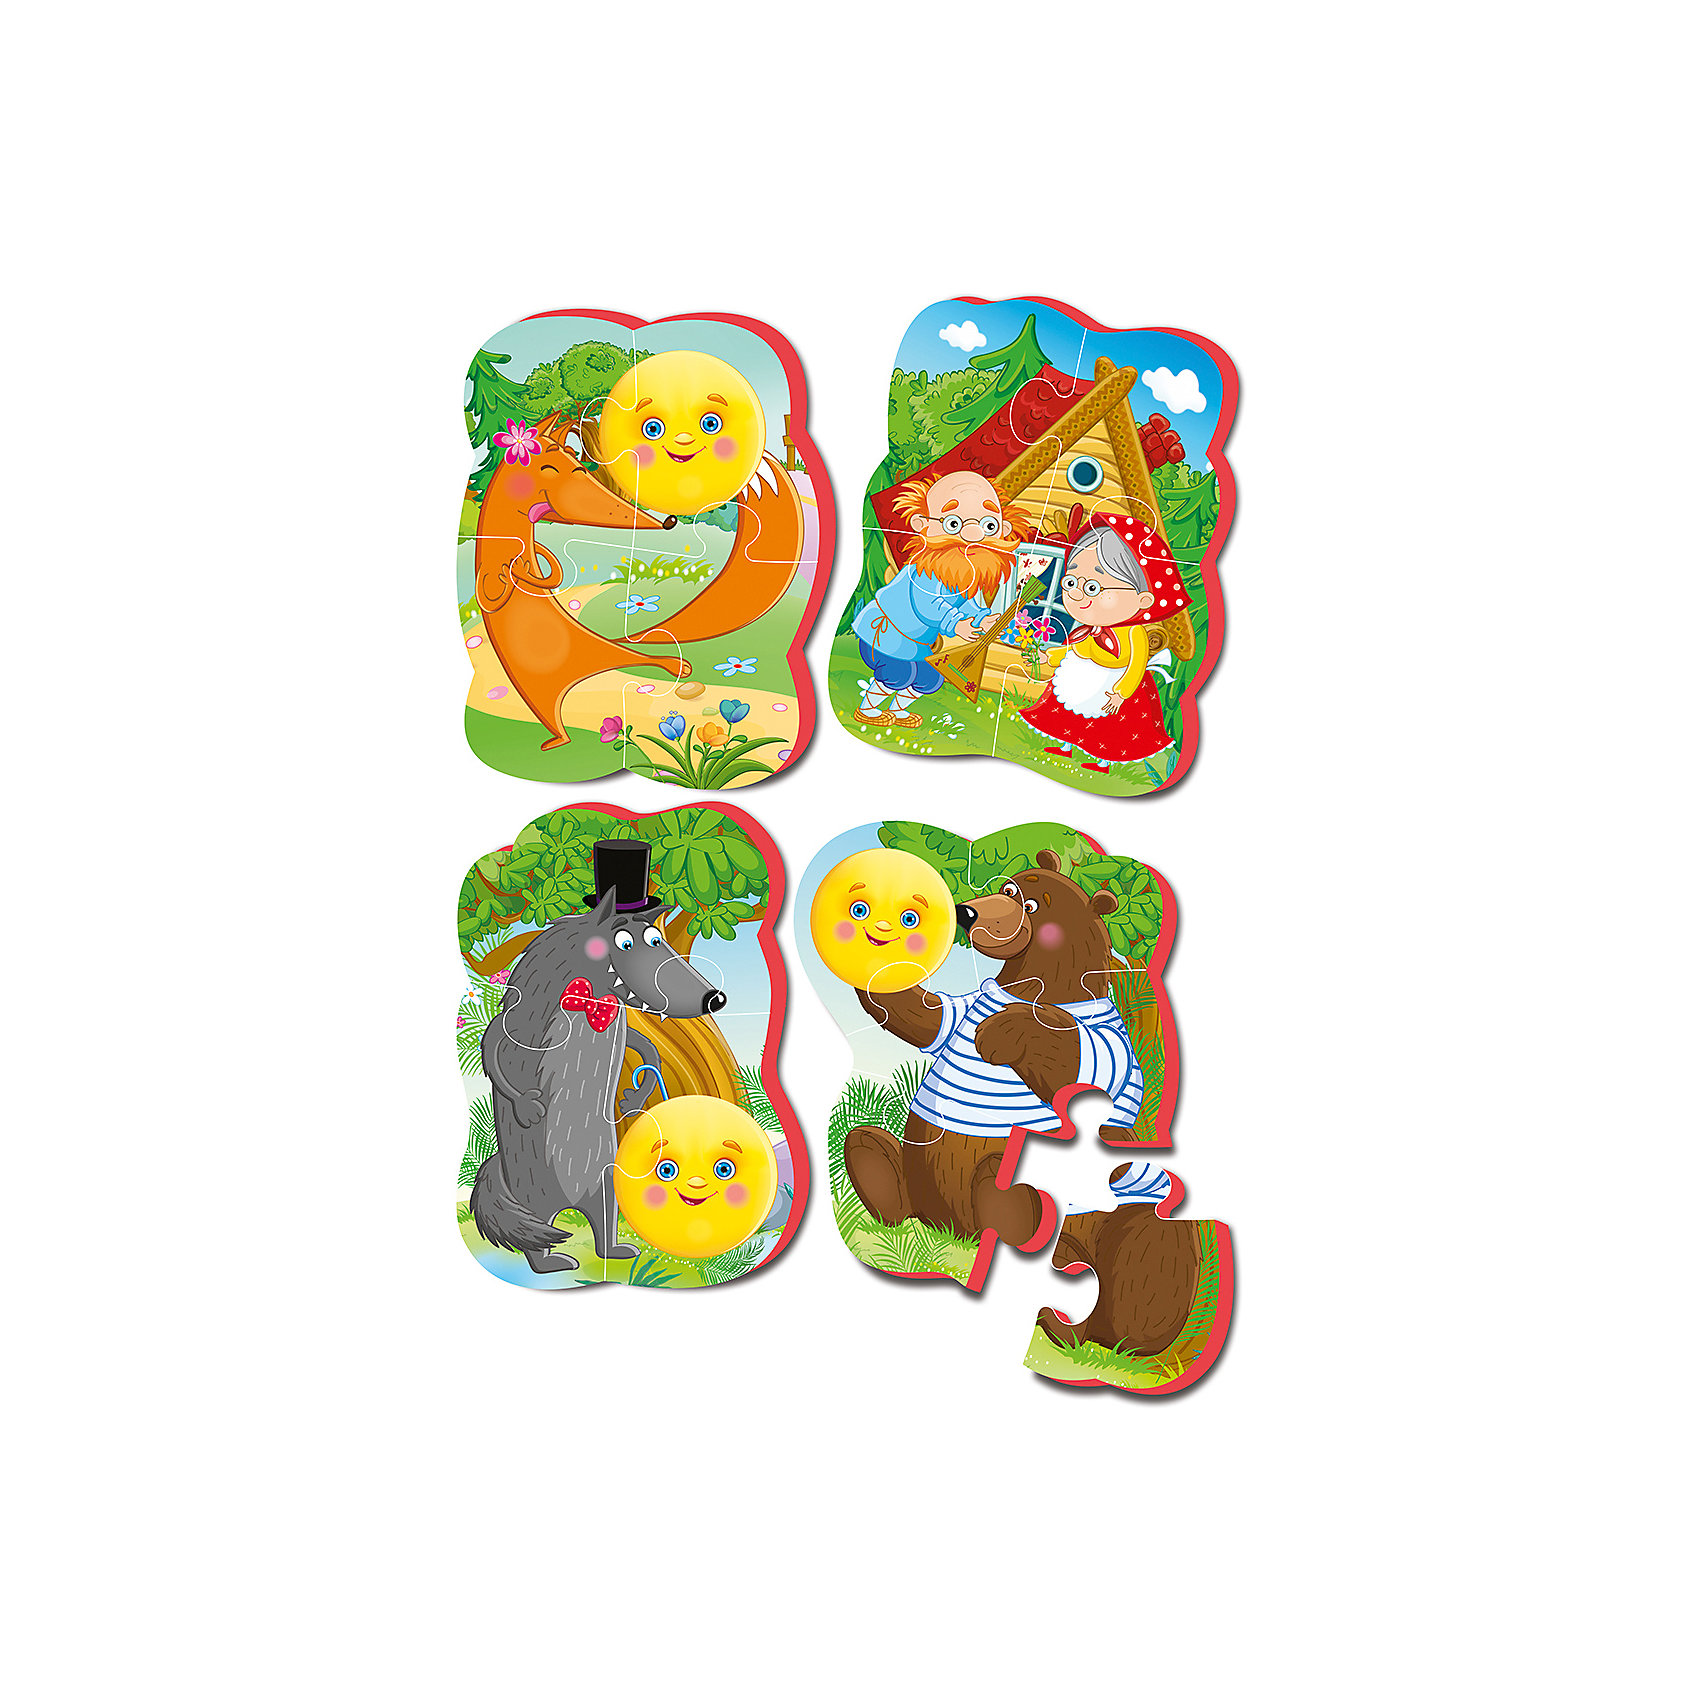 Vladi Toys Мягкие пазлы Колобок, Vladi Toys пазлы vladi toys пазлы мягкие baby puzzle сказки репка